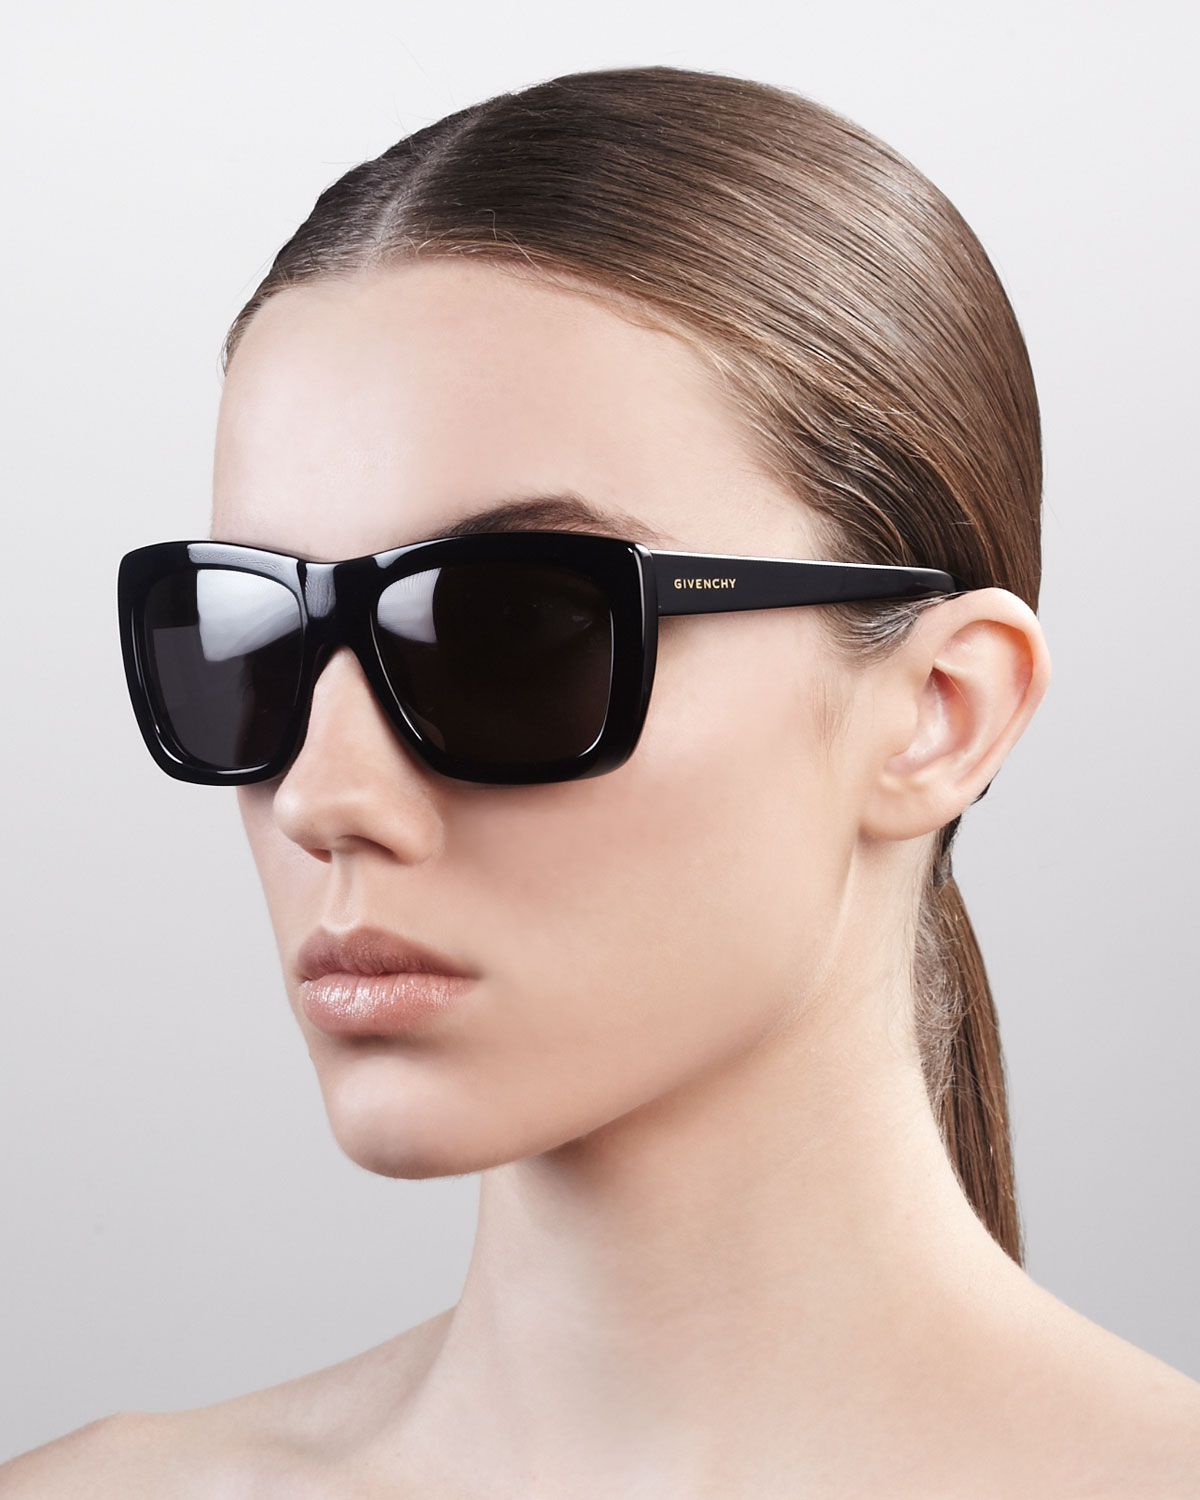 65a9fb0ebe62 Givenchy Oversized Square Sunglasses Shiny Black in Black - Lyst